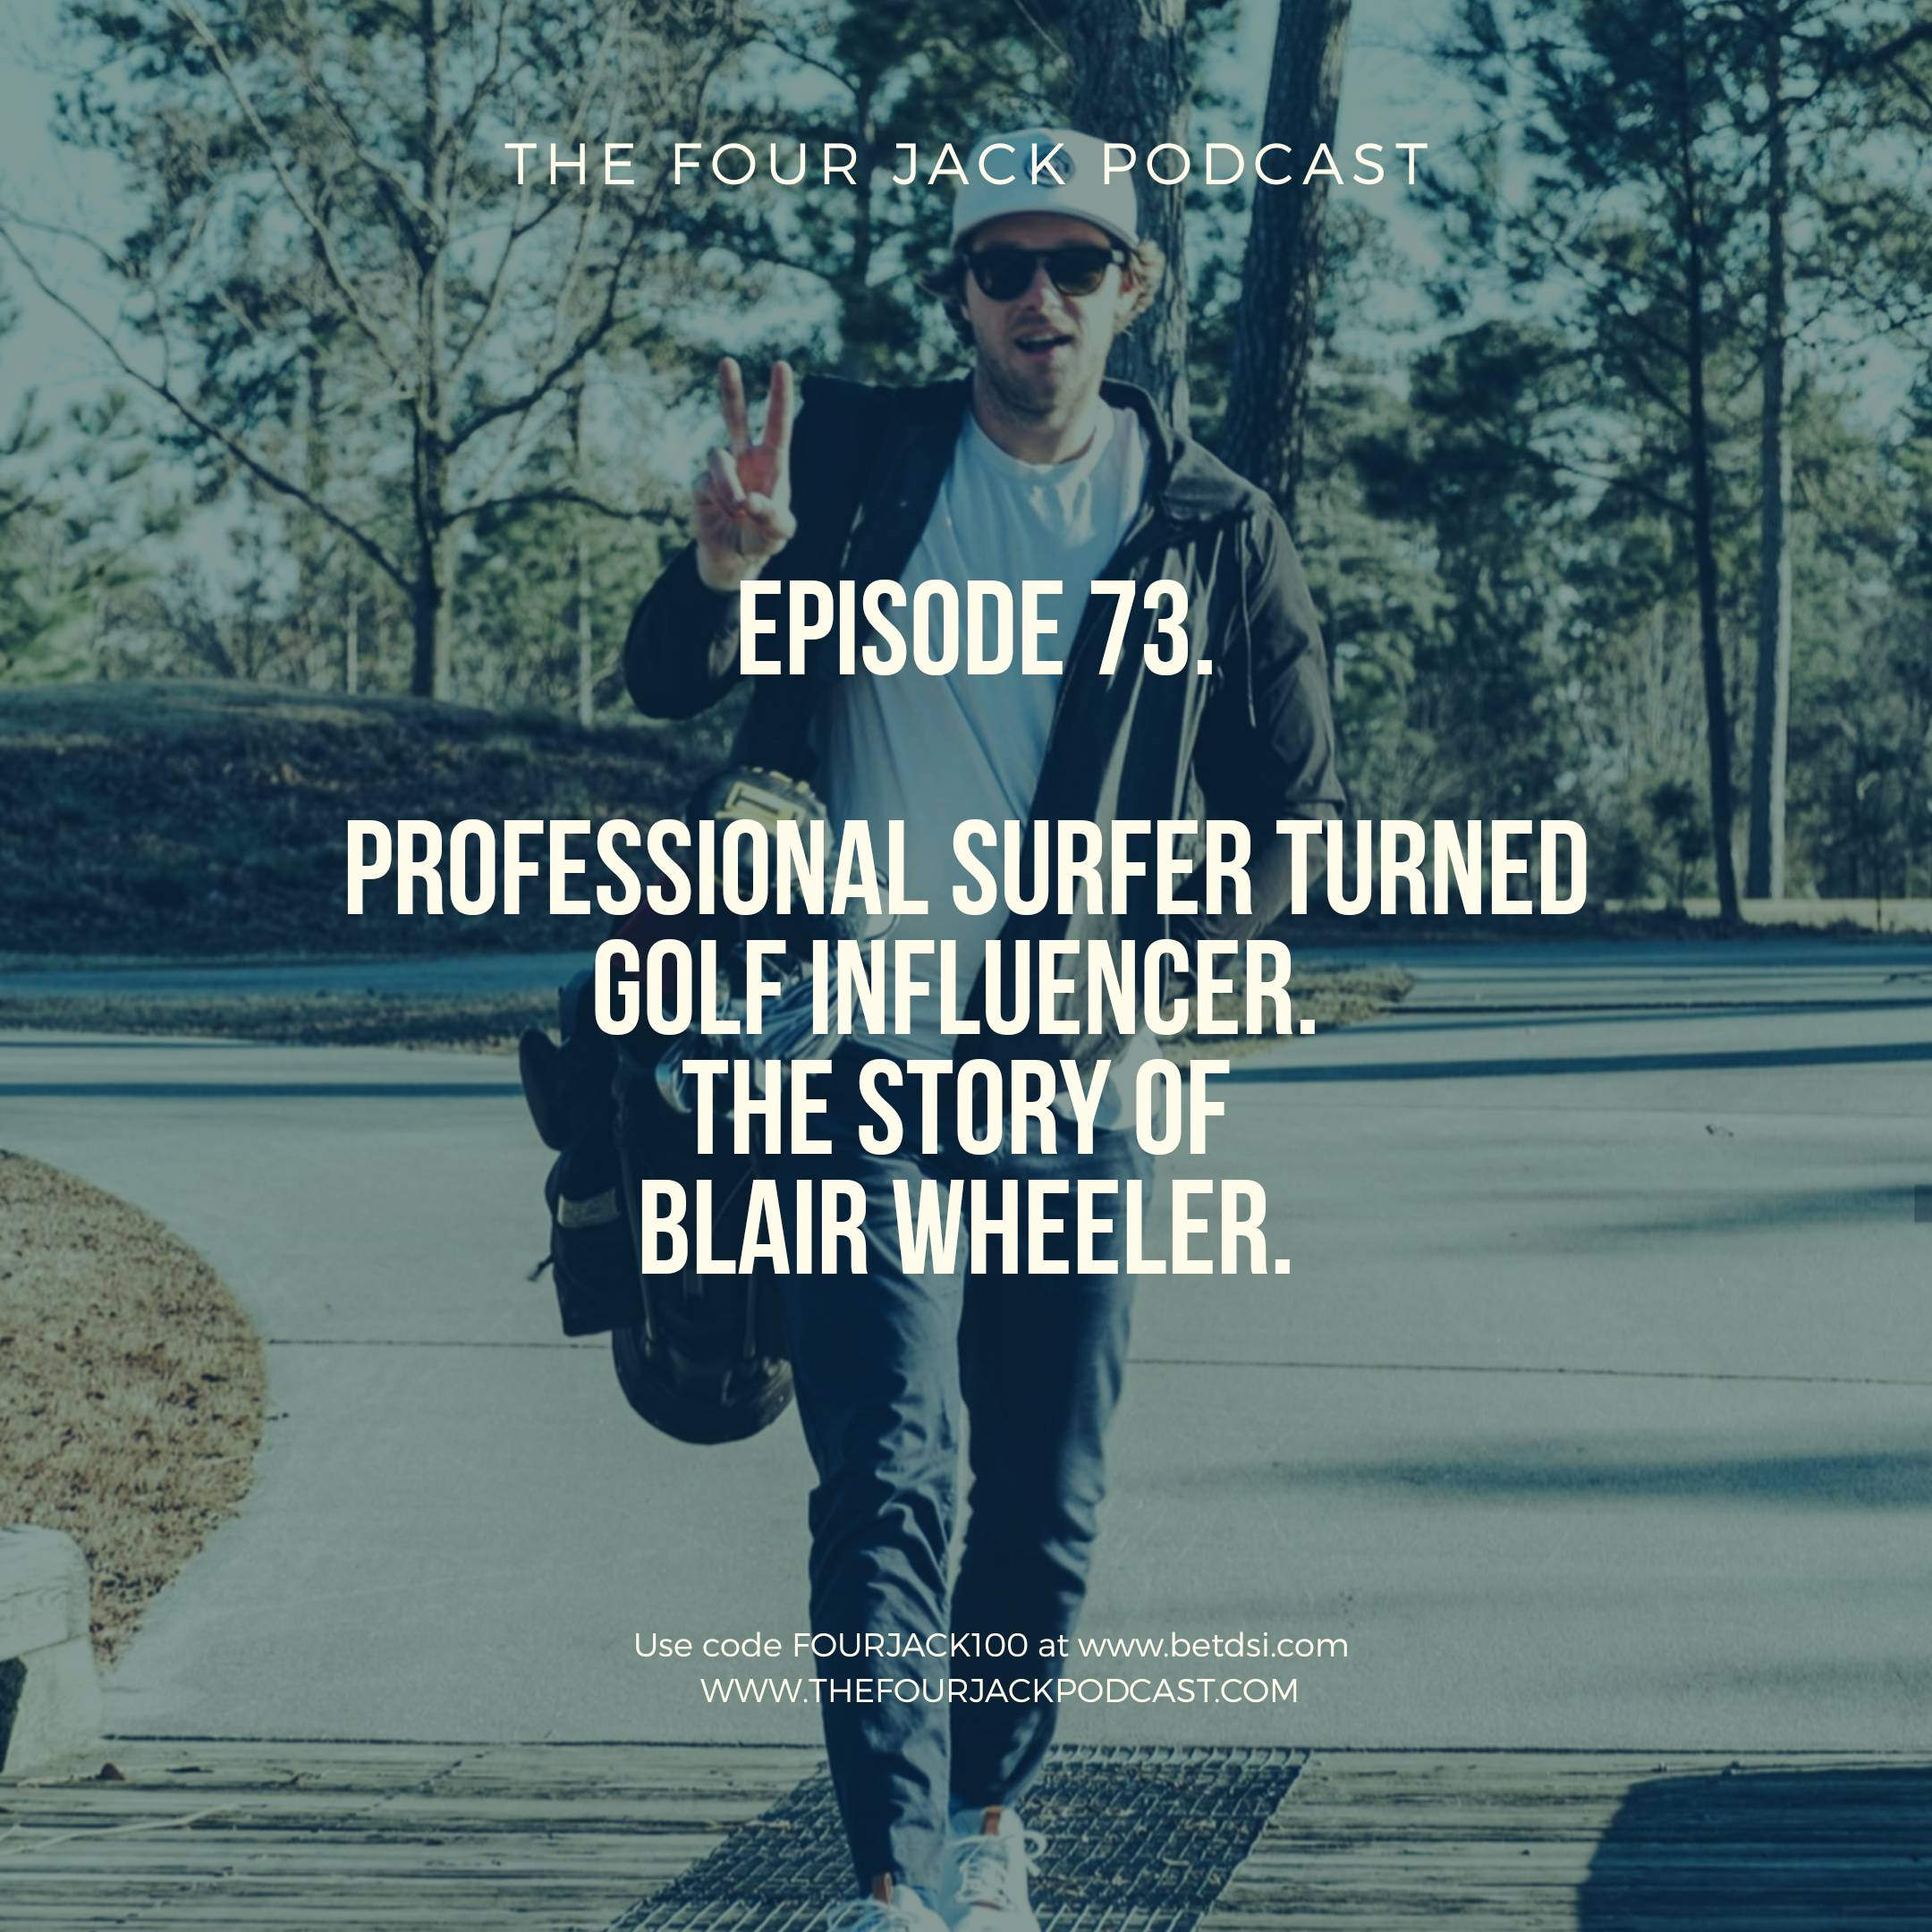 Episode 73. Professional Surfer Turned Golf Influencer. Blair Wheeler